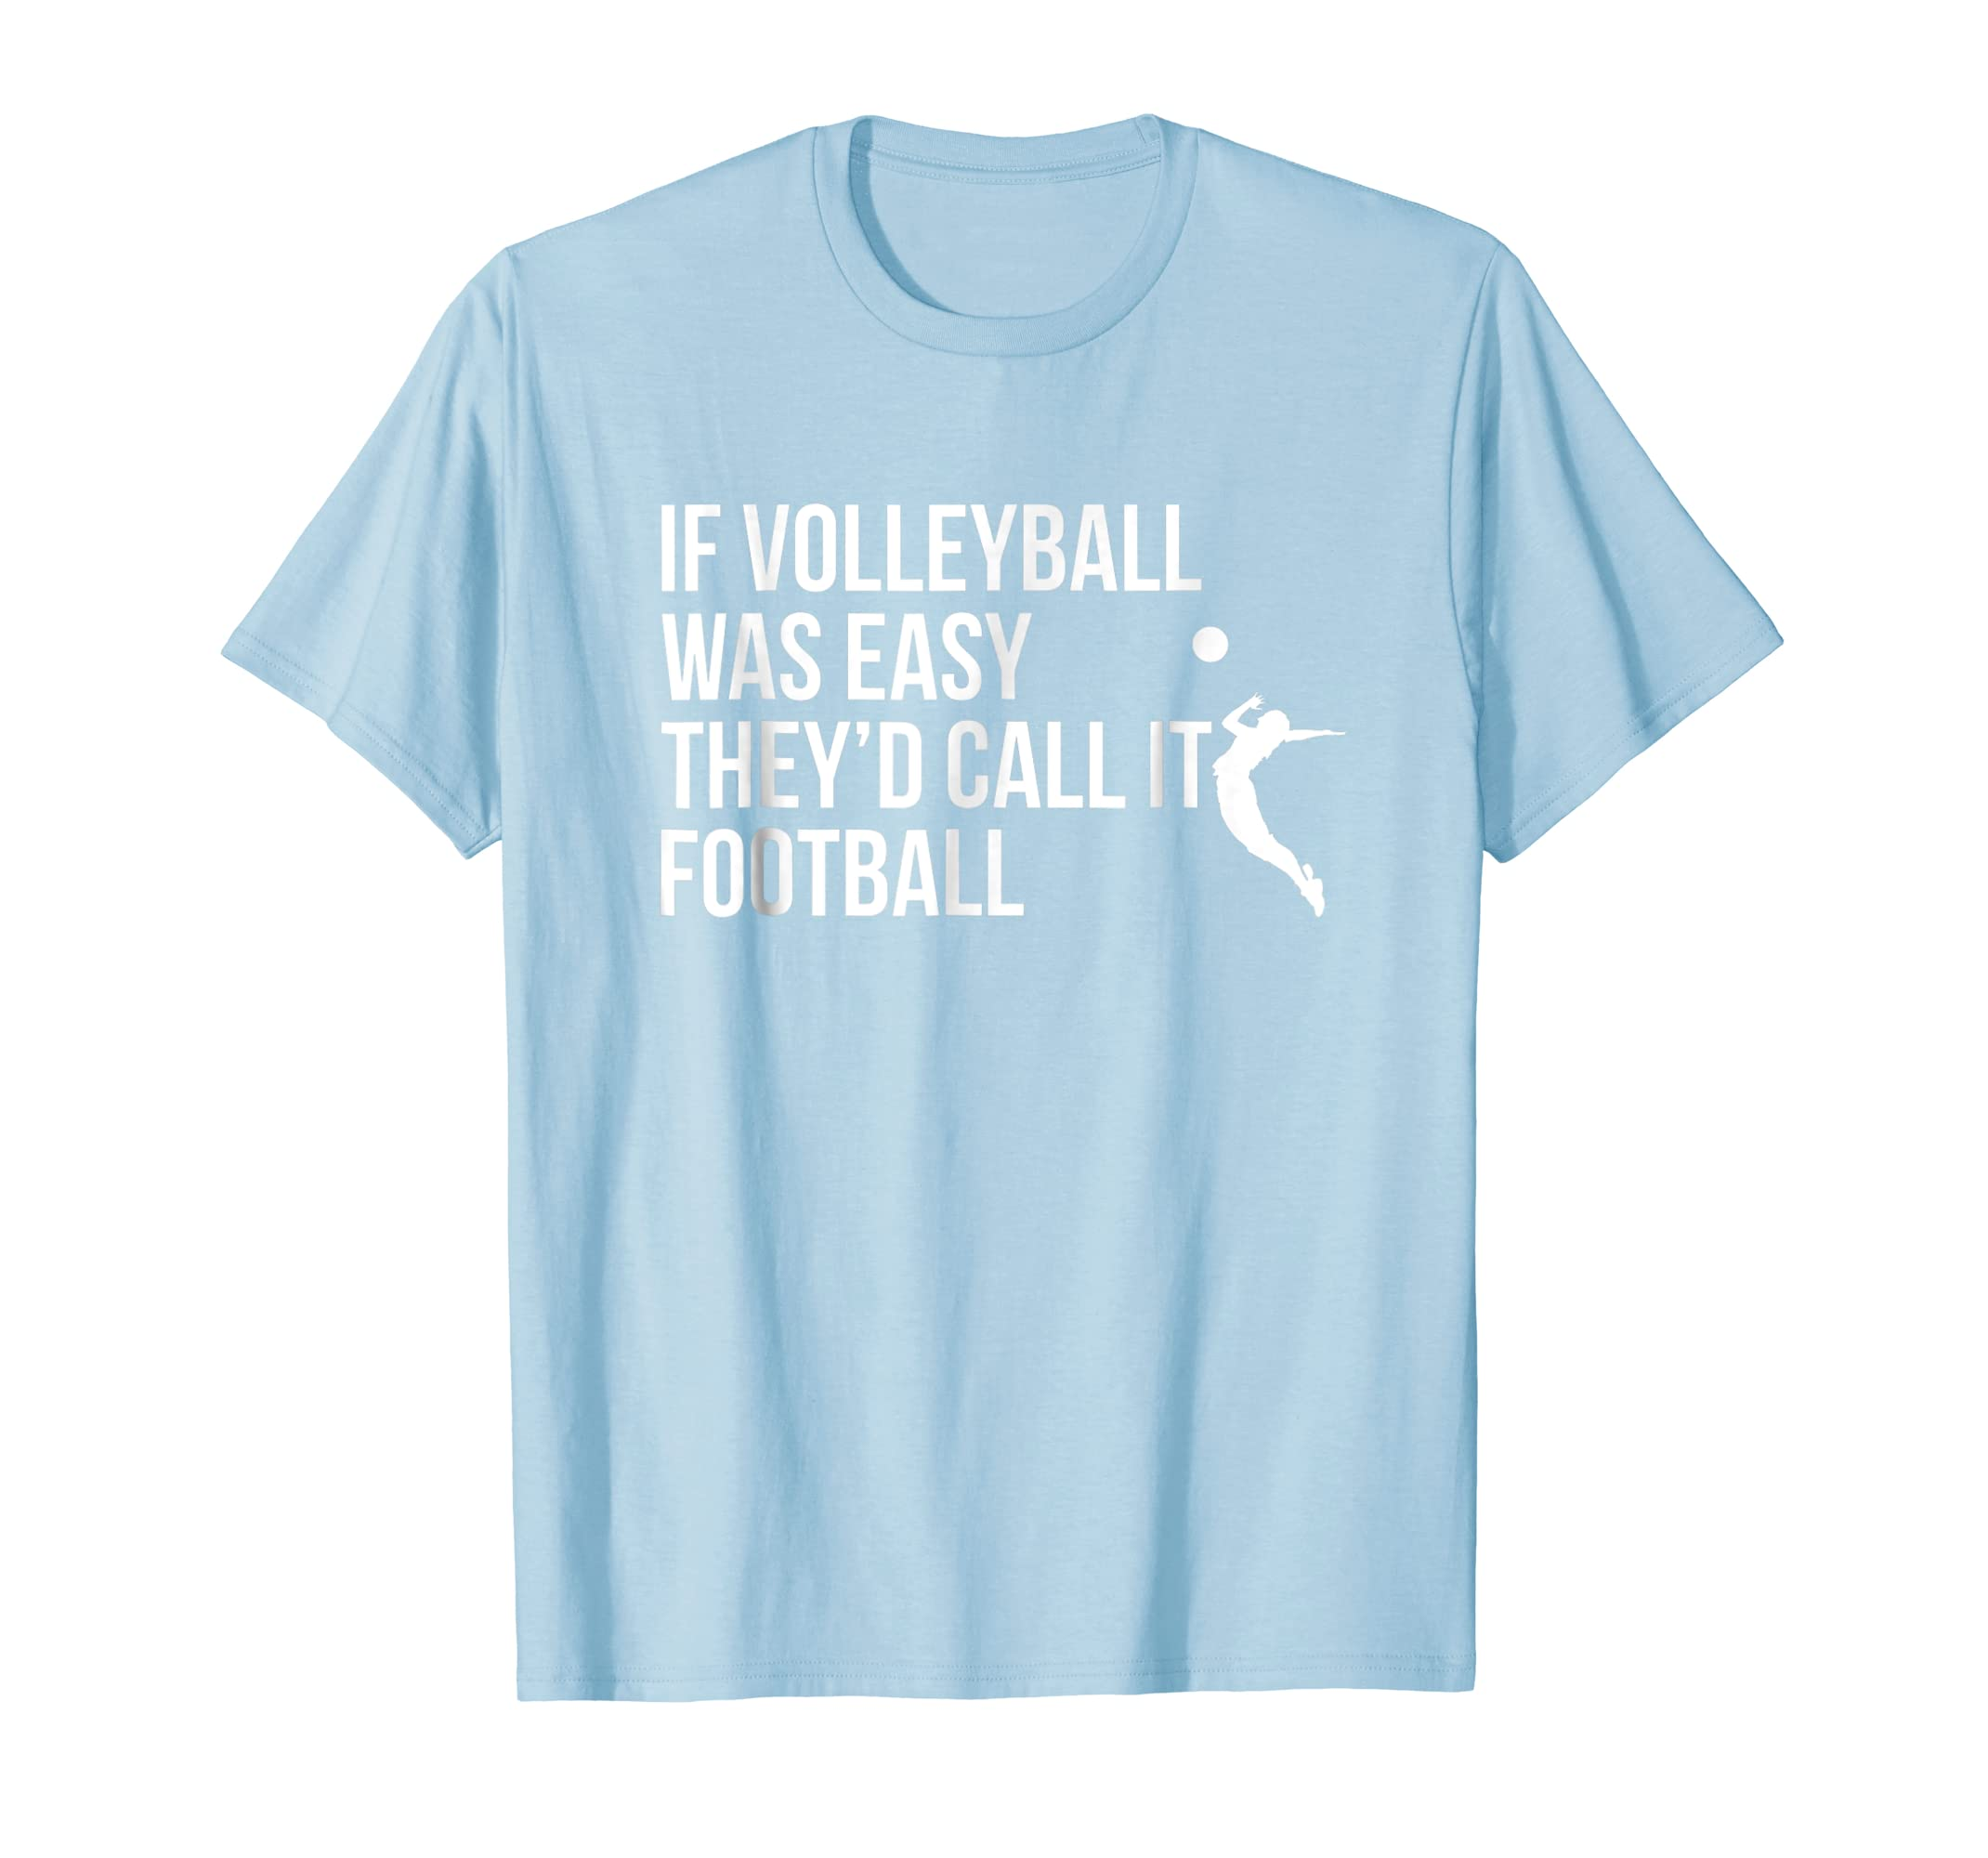 94ba3754 Amazon.com: Cute Funny Volleyball T-Shirt For Teen Girls and Women: Clothing